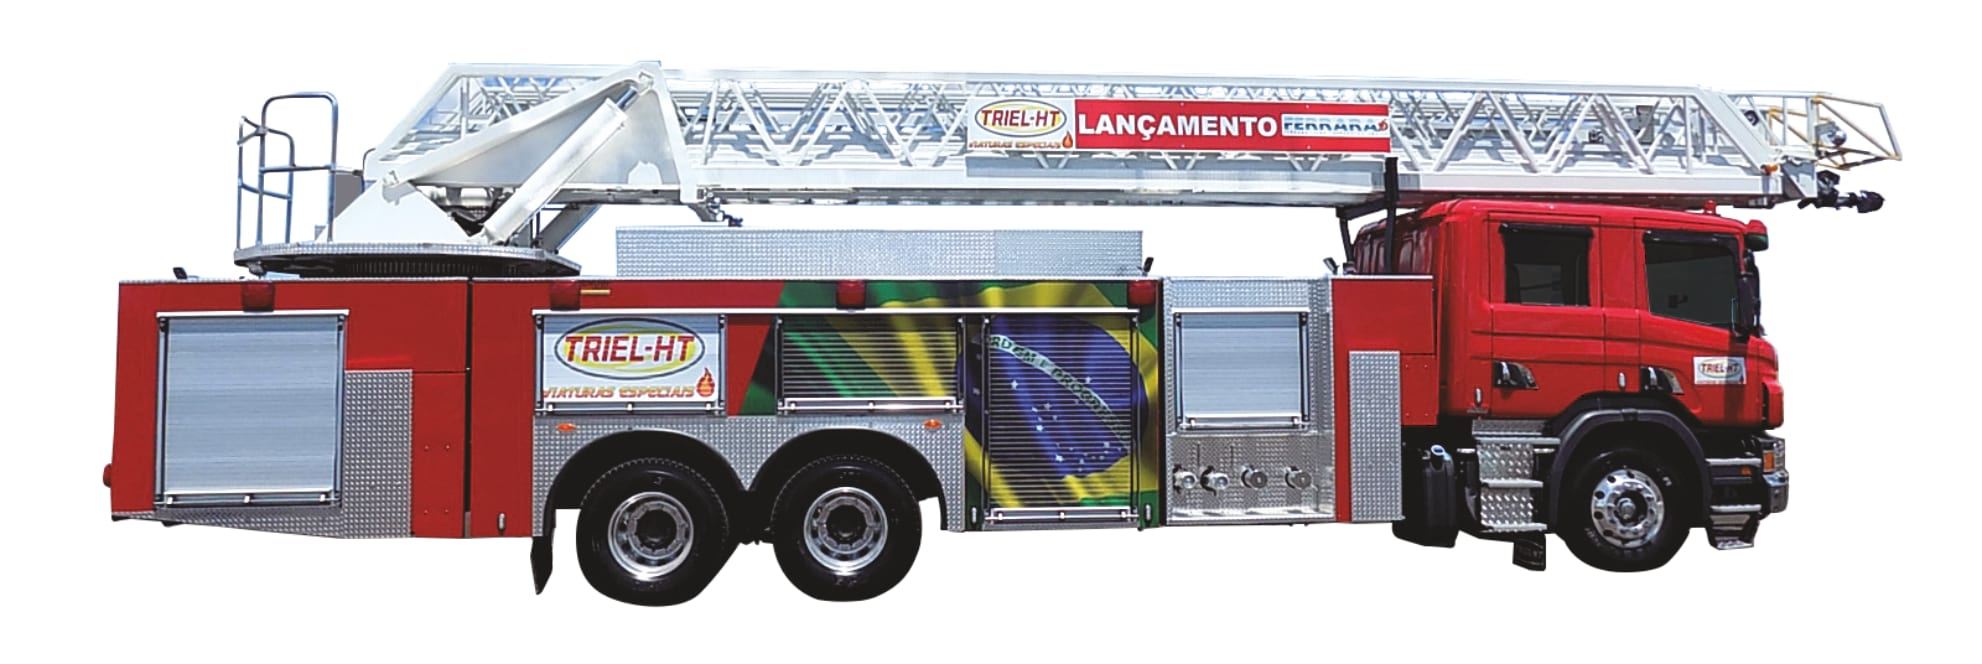 Triel customises Scania turntable ladder truck with Allison